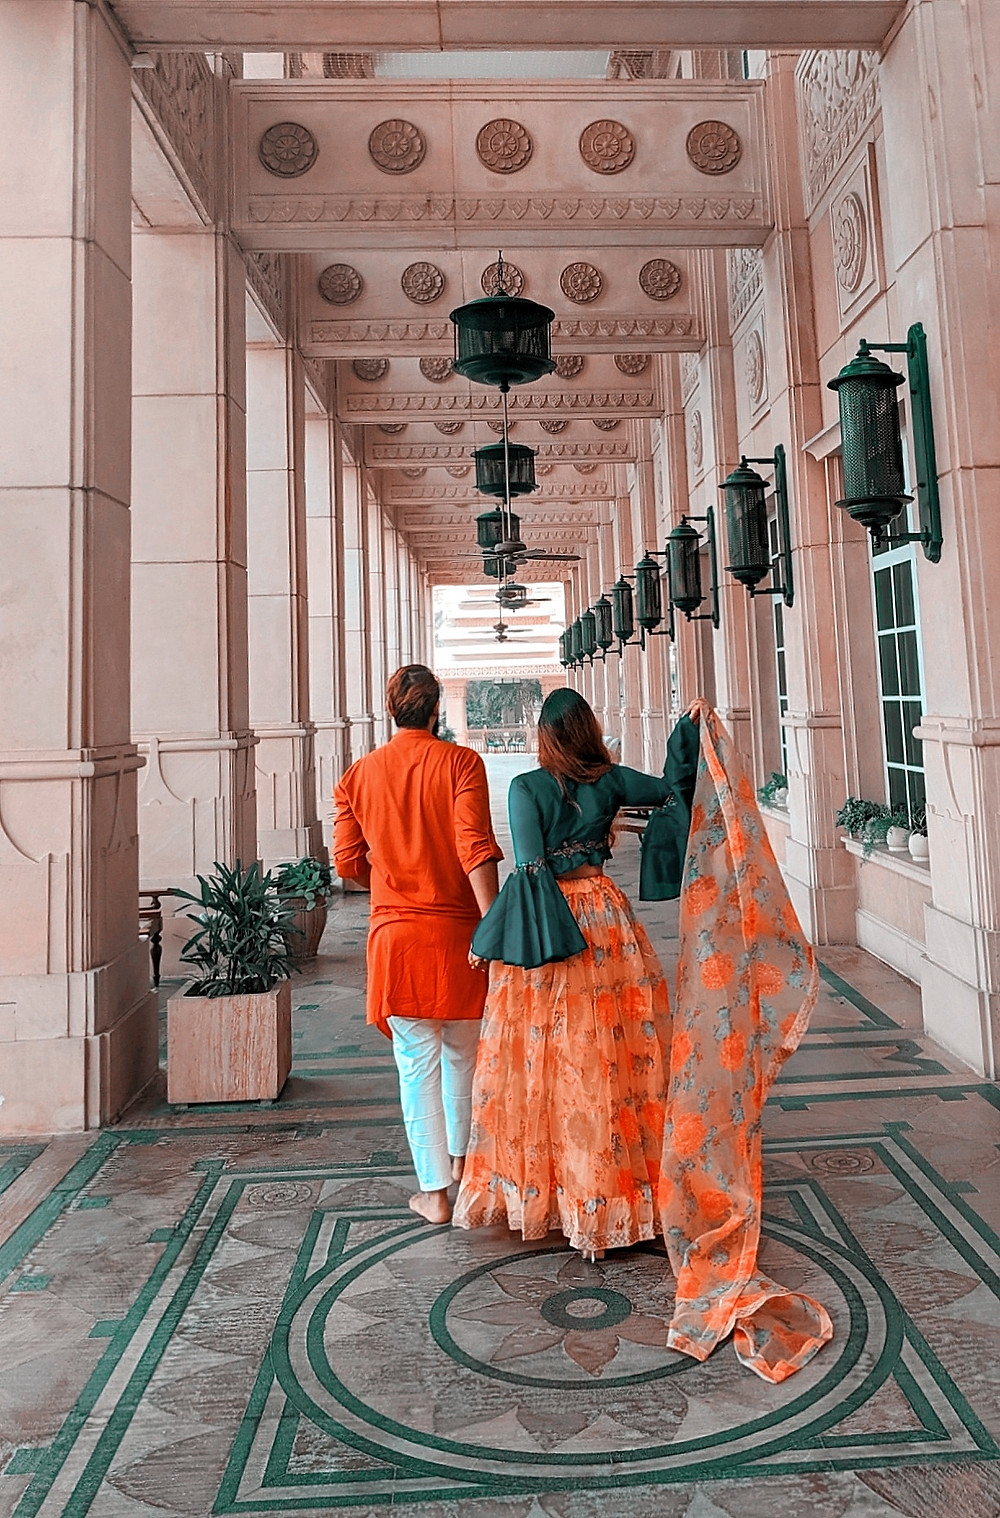 Thatnomadcouple at ITC Grand Bharat, ITC Grand Bharat, ITC Hotels, Luxury retreat, retreat, Luxurious retreat in Asia, best hotels, India travel, Travel Bloggers, That NomadCouple, my_fernweh_soul, offbeat_trouvaille, beautiful destinations, India tourism, travellog, best places in india, best hotels in india, delhi-ncr, manesar, aravali hills, indian hotels